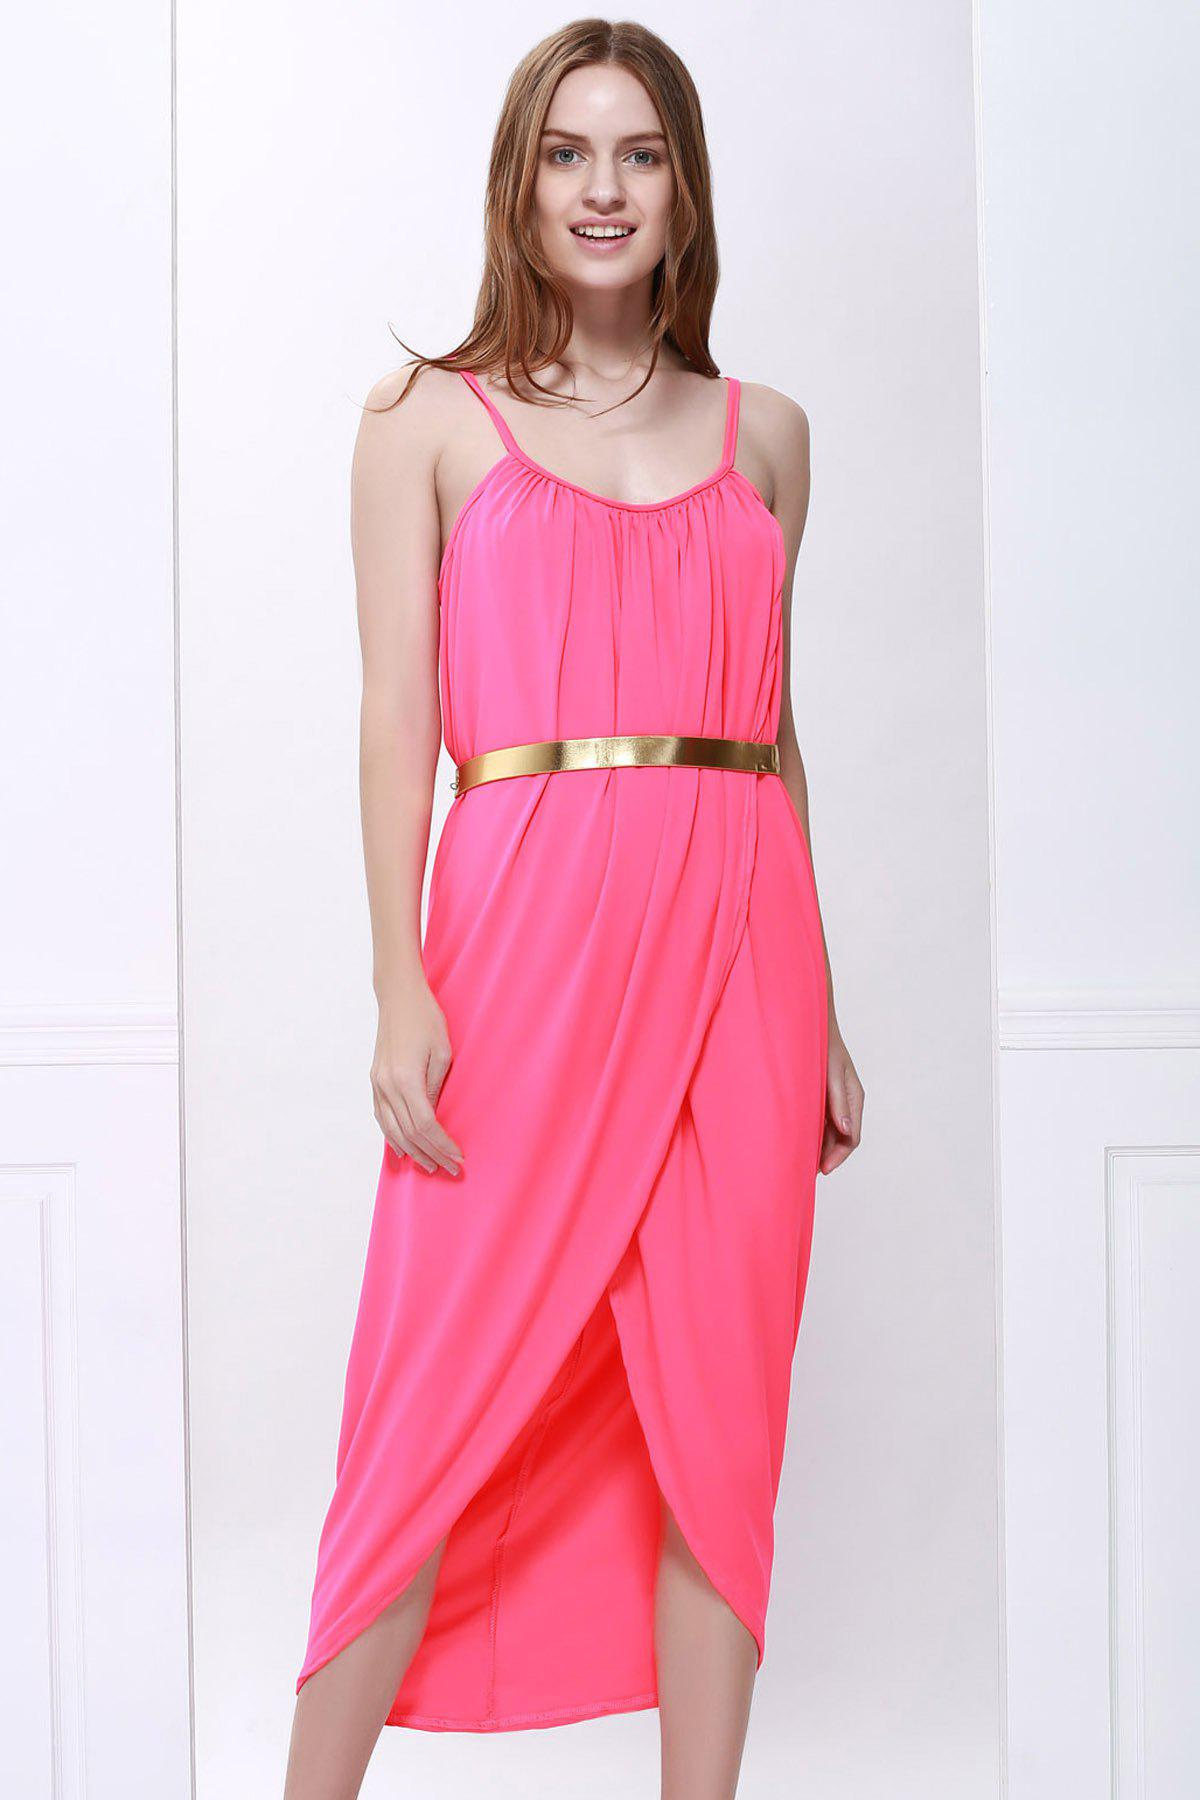 Sale Sexy Spaghetti Strap Sleeveless Solid Color Furcal Women's Dress